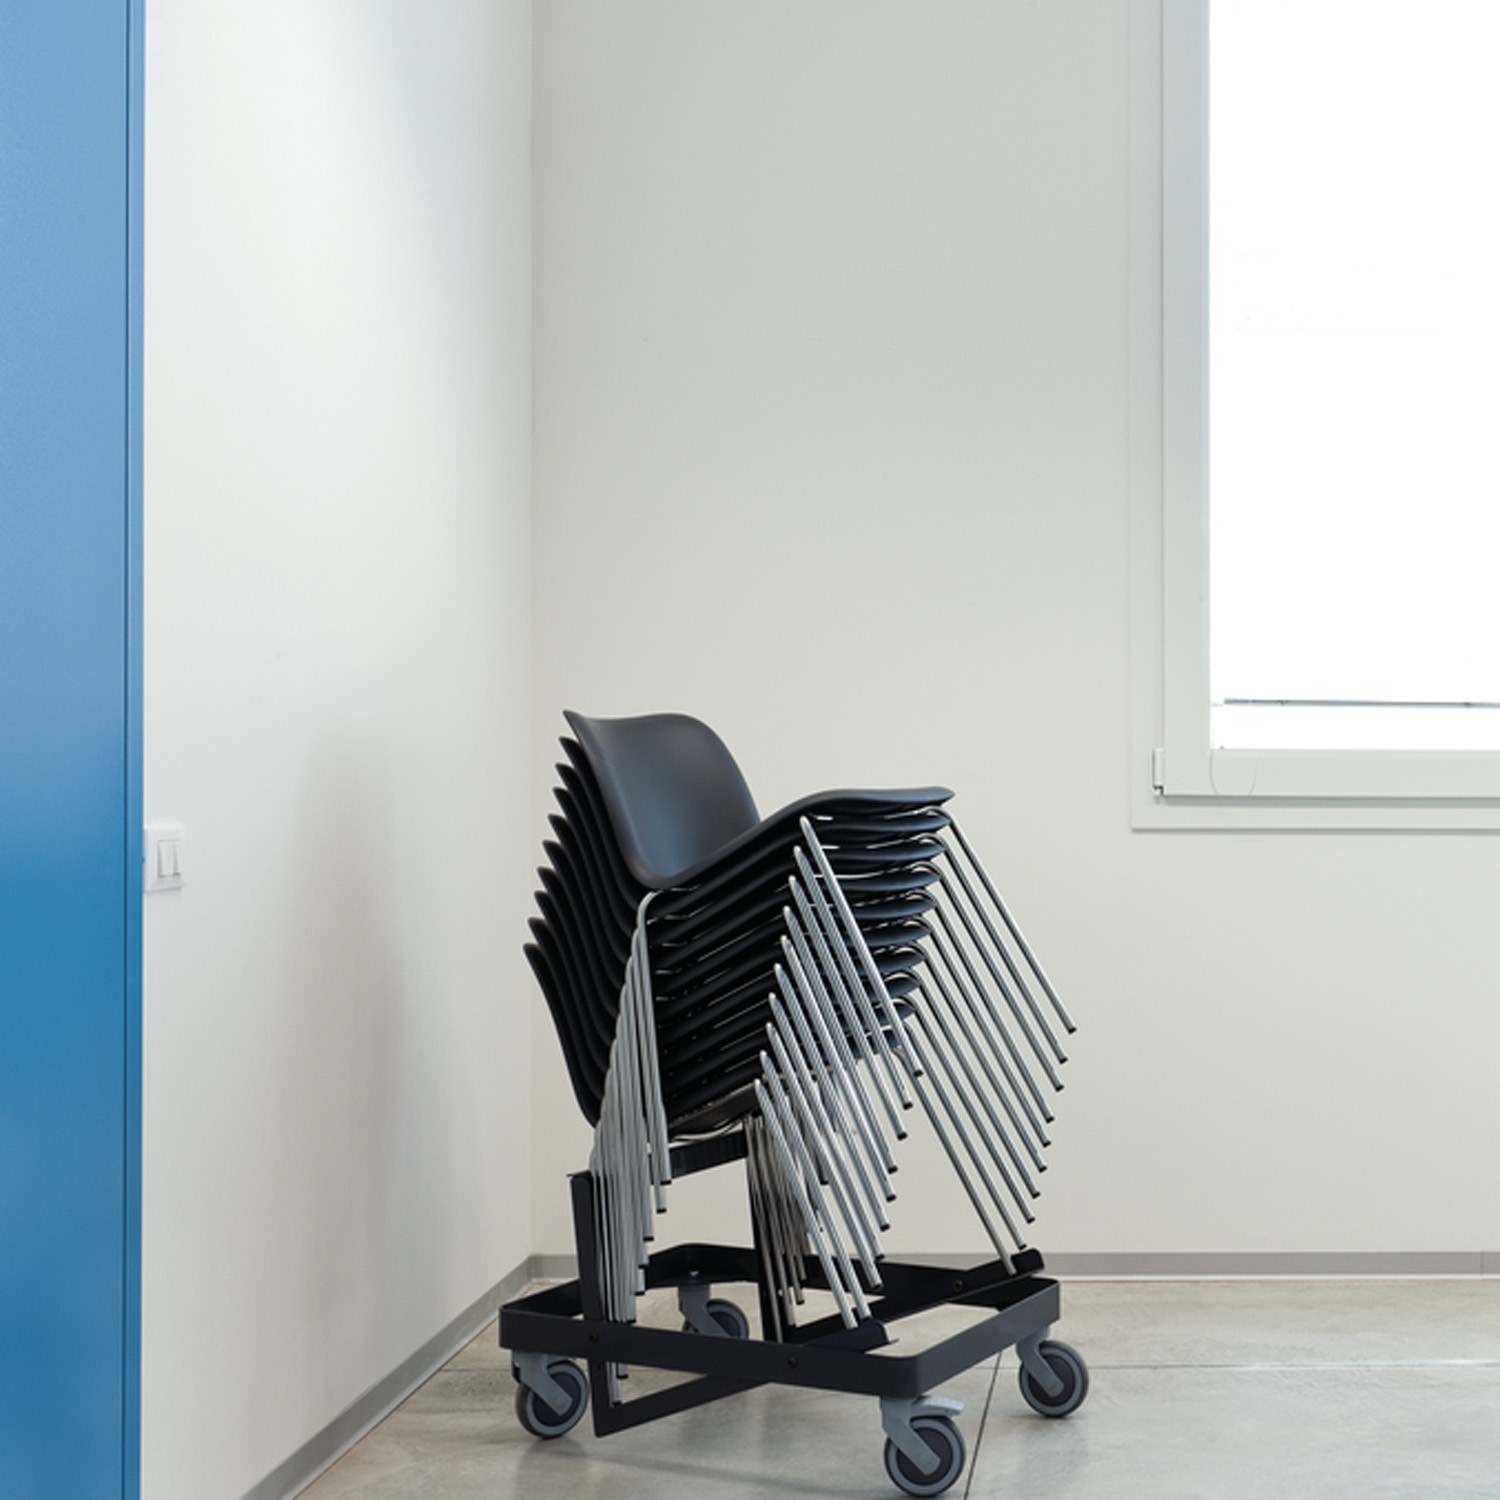 SixE Stackable Chairs by How